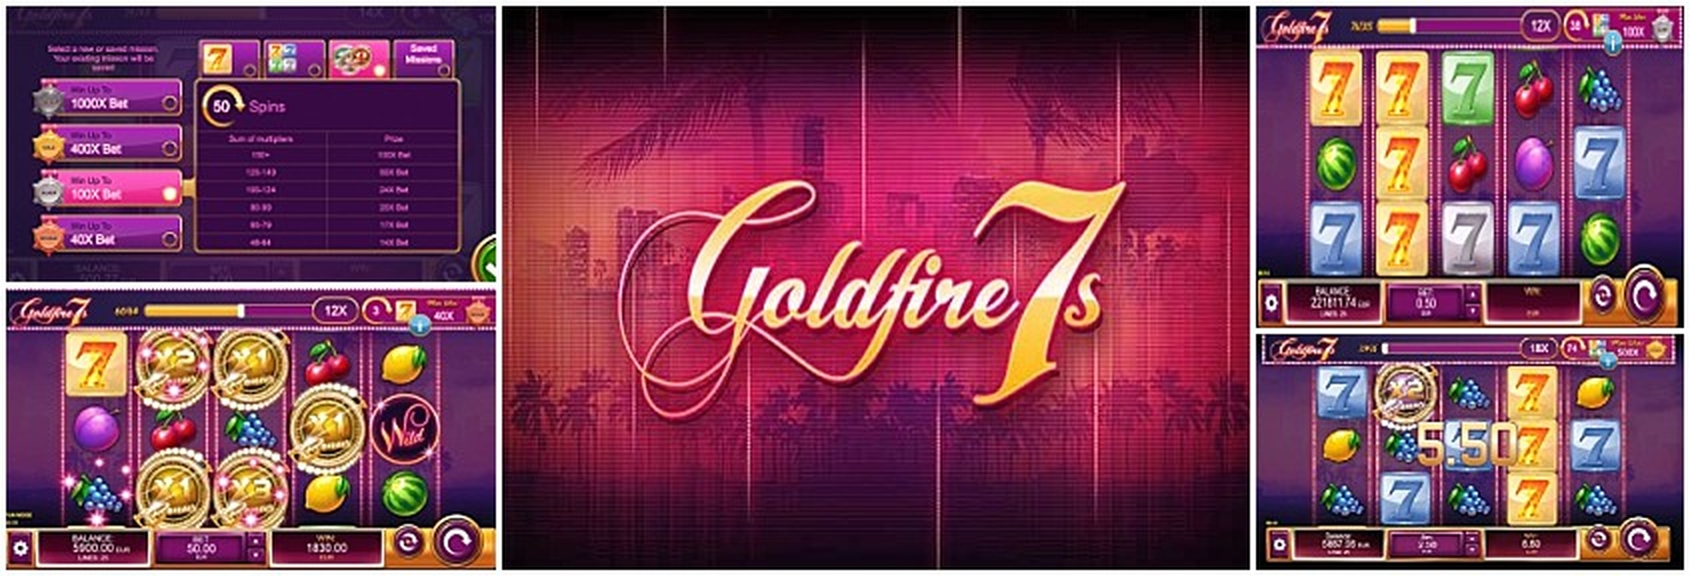 The Goldfire 7s Missions Online Slot Demo Game by Kalamba Games